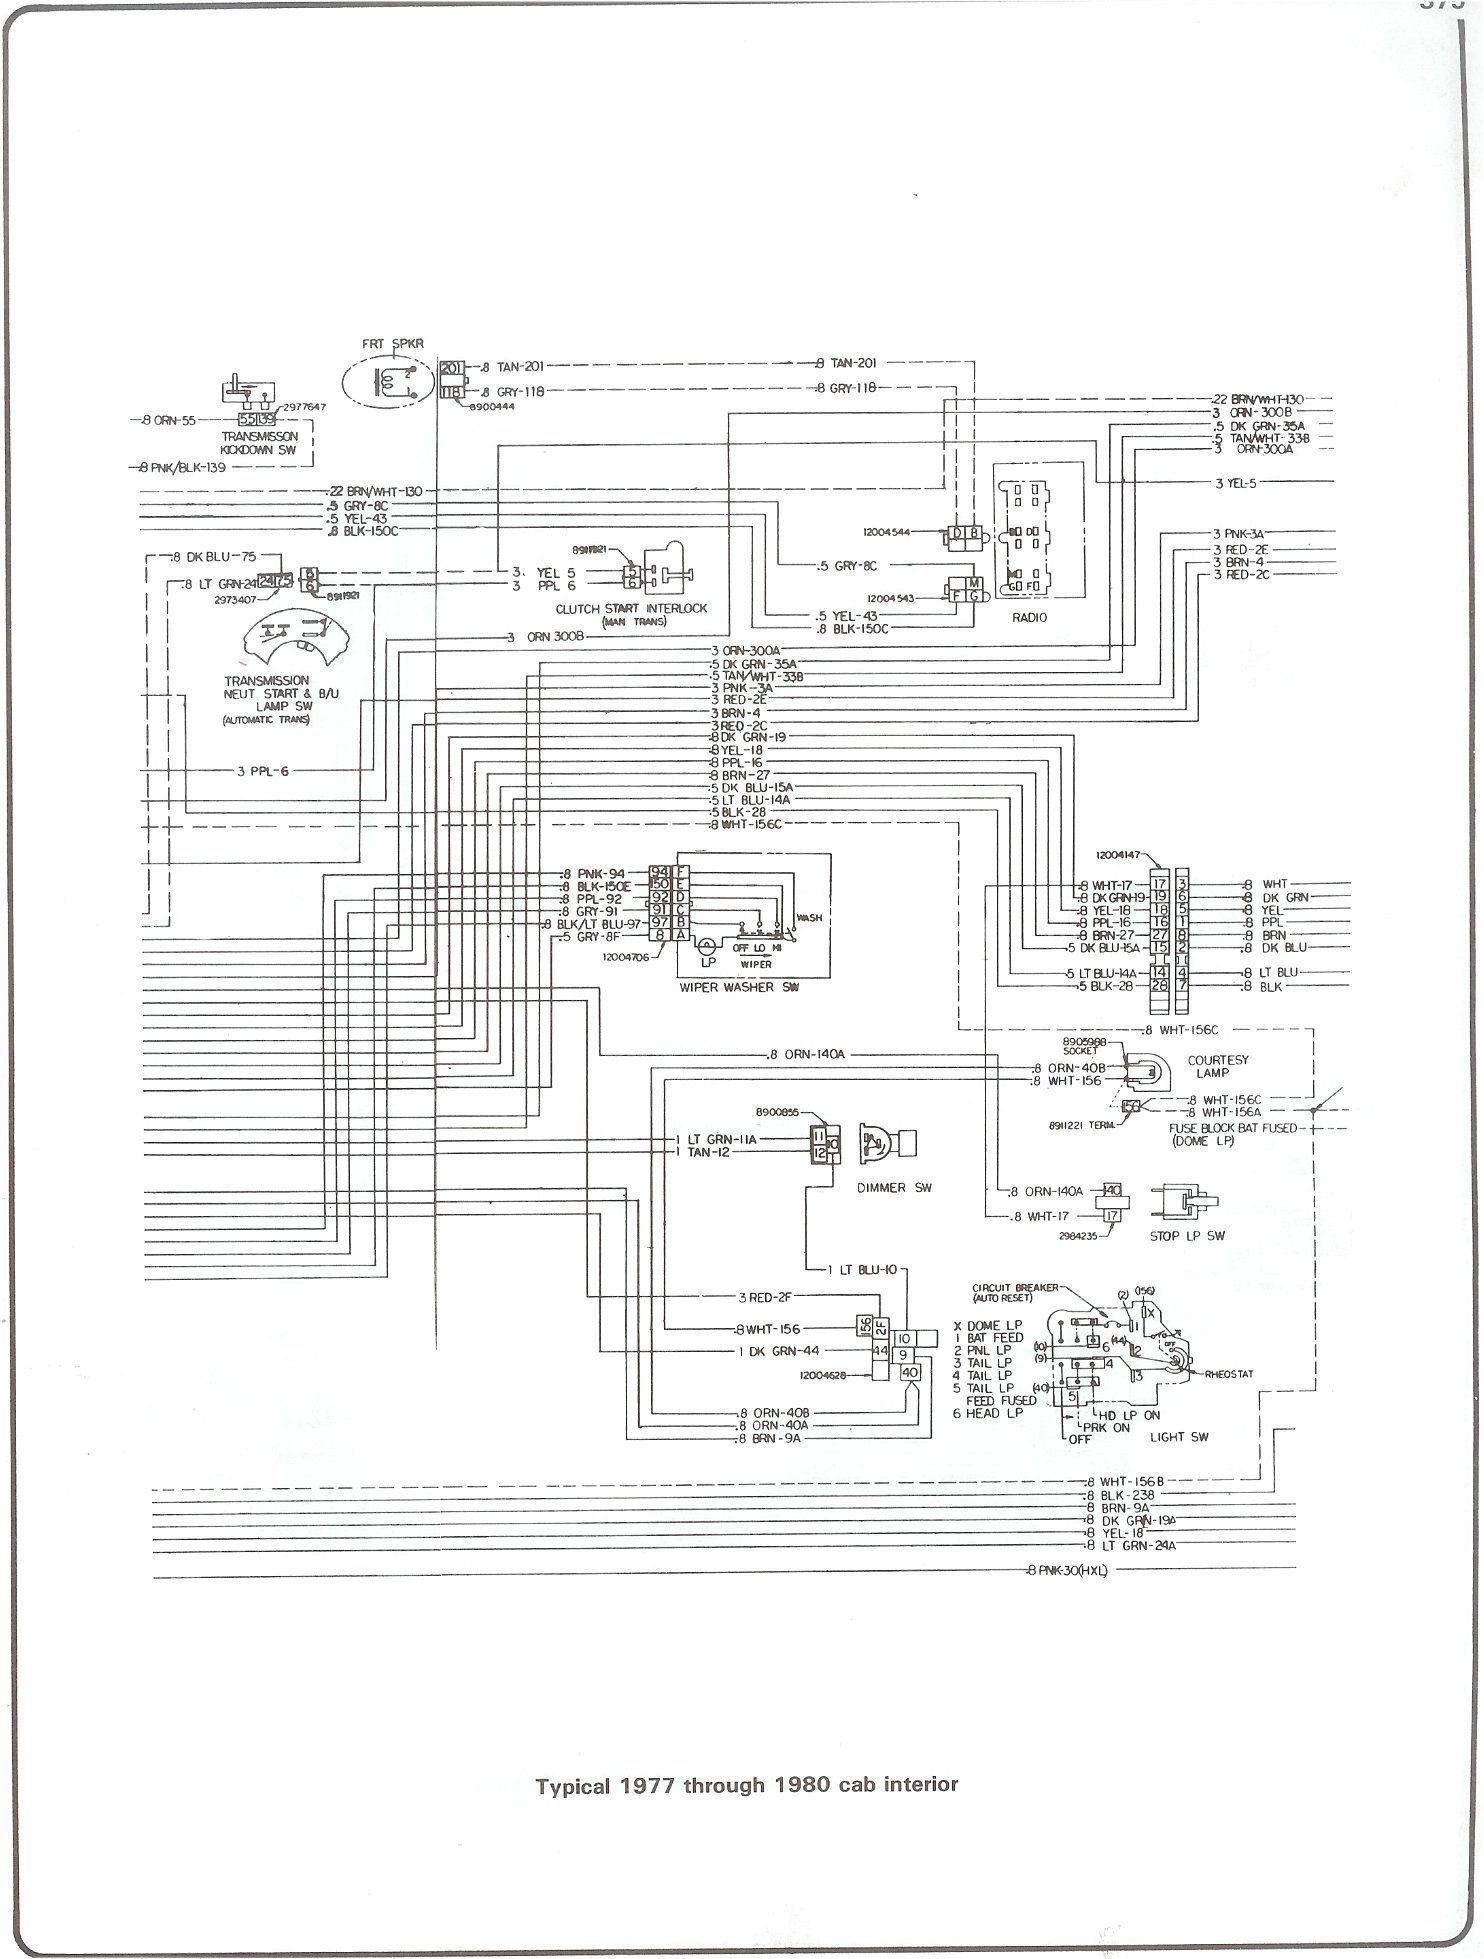 77 80_cab_inter complete 73 87 wiring diagrams 4.3 Vortec Wiring-Diagram at fashall.co